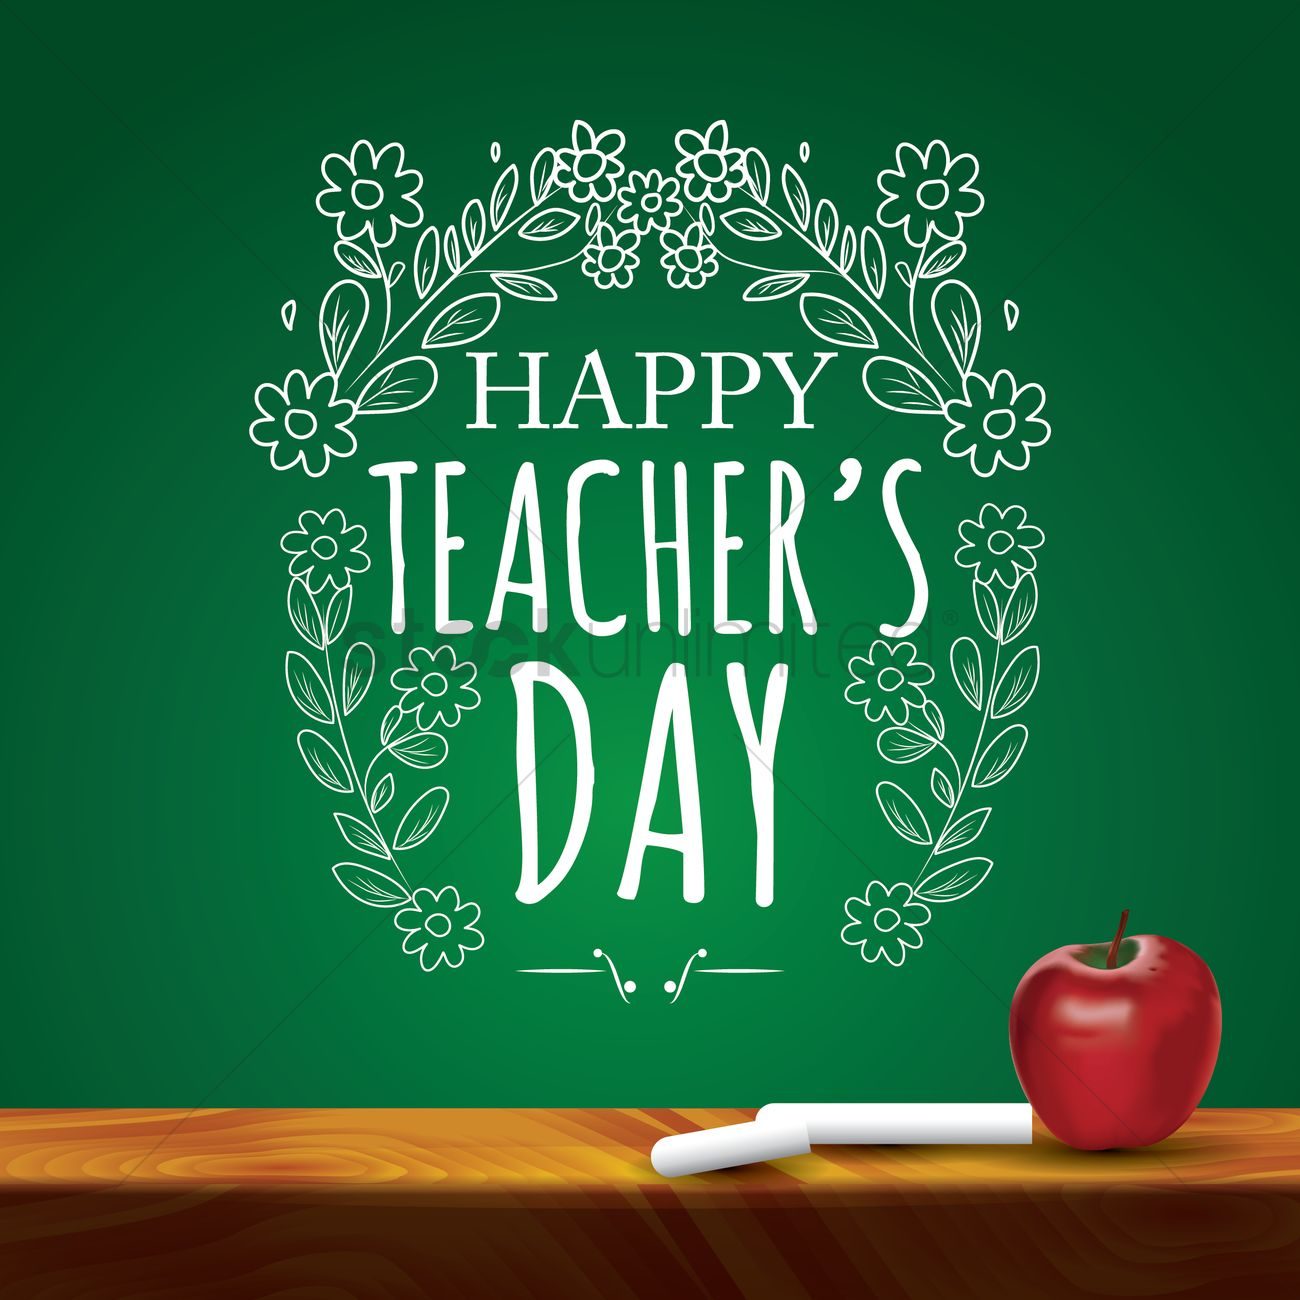 Teachers Day Quotes In English Images: Happy Teacher's Day Design Vector Image